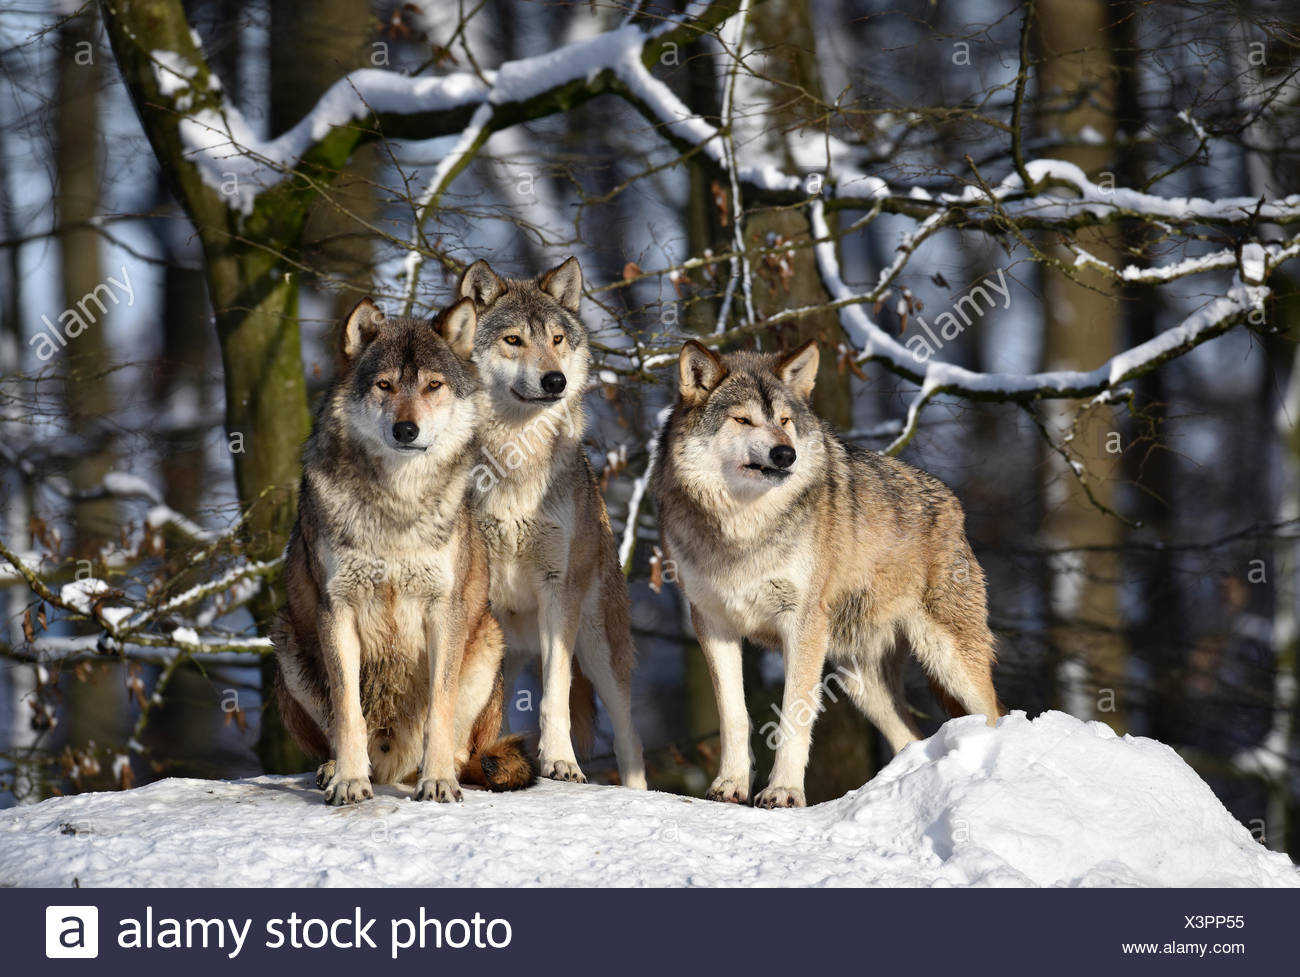 Three wolves on look out, Northwestern wolf (Canis lupus occidentalis) in the snow, captive, Baden-Württemberg, Germany - Stock Image